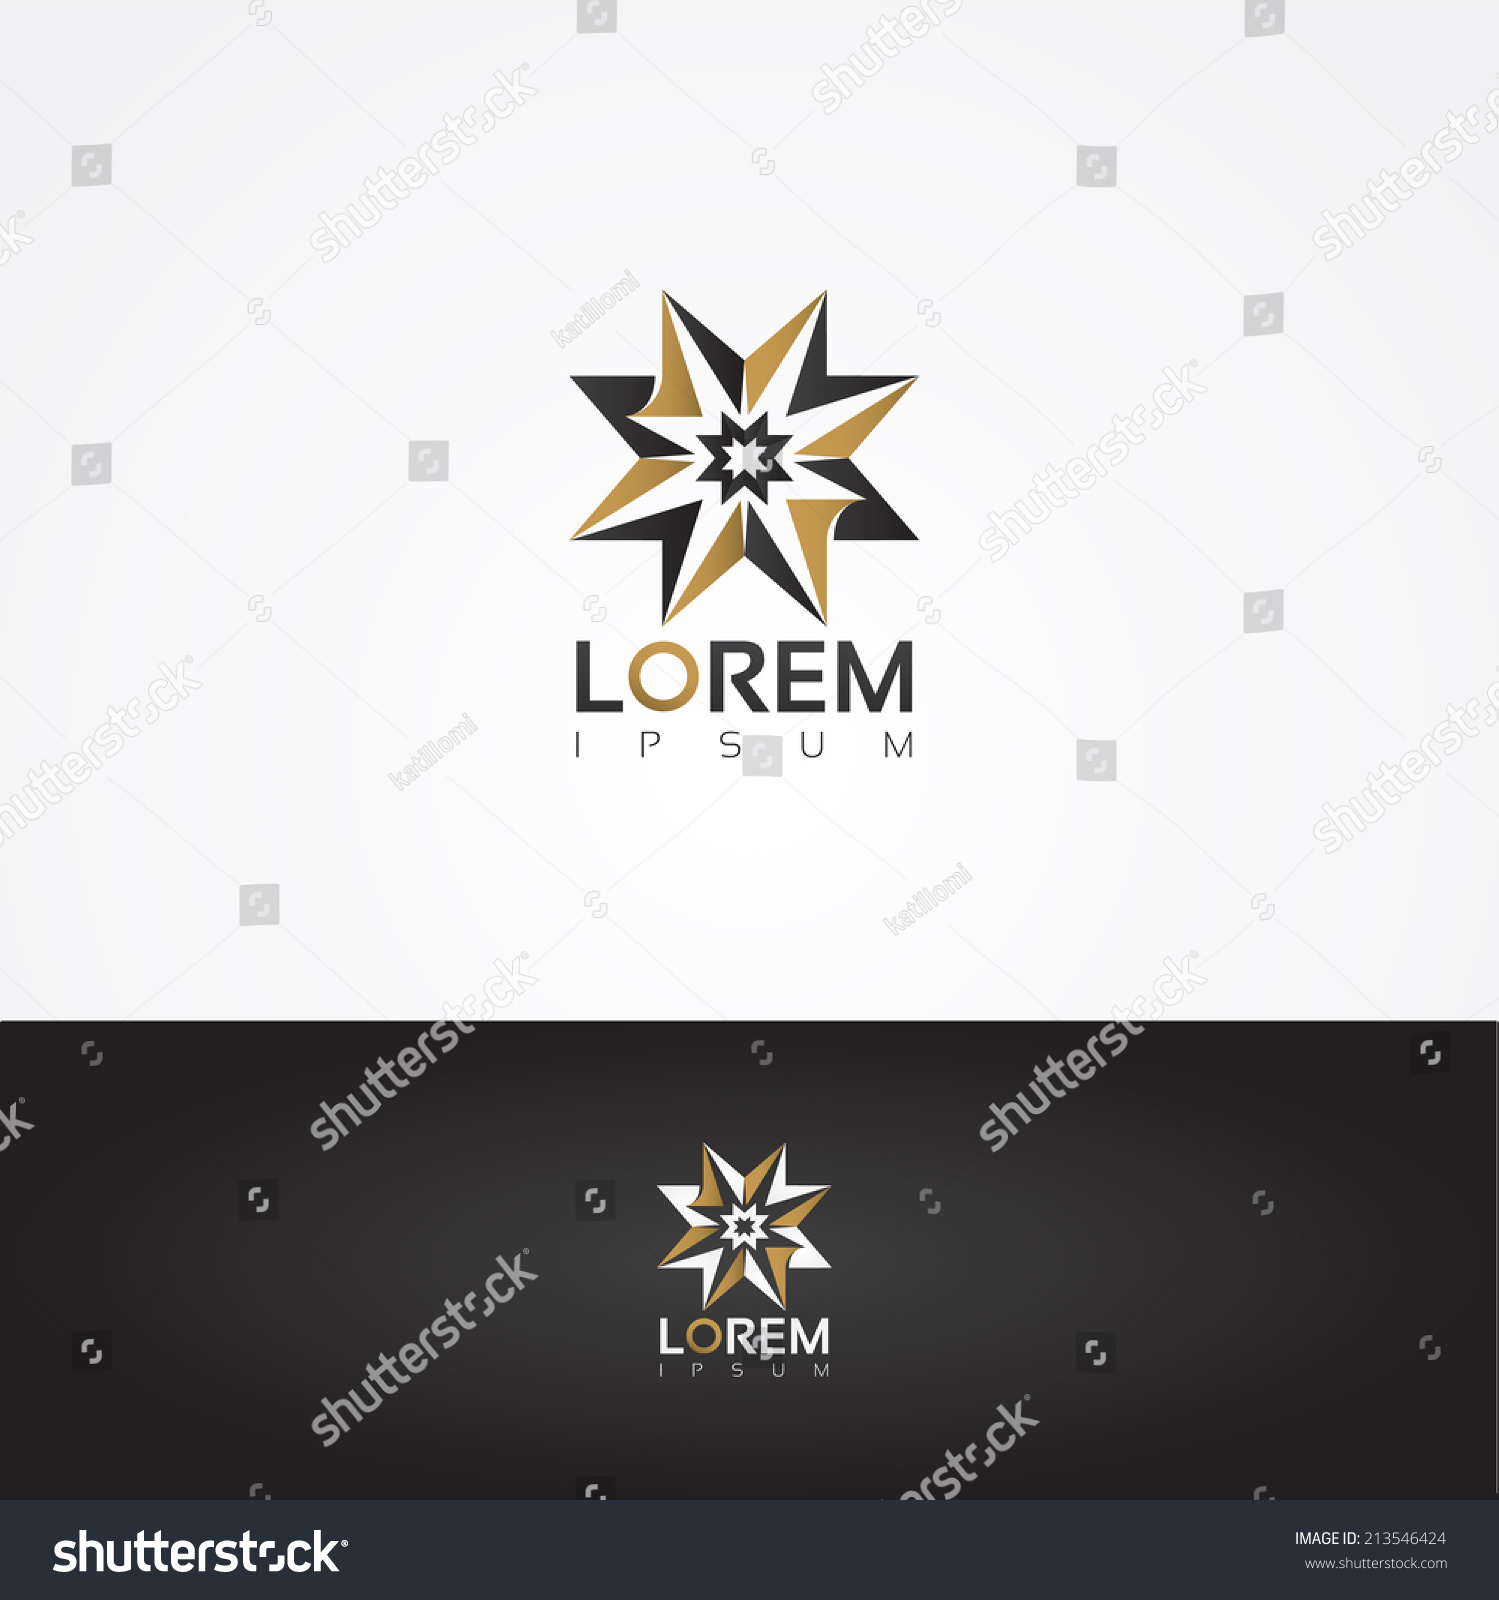 Vector Graphic Gold Grey Star Shaped Stock Photo Photo Vector